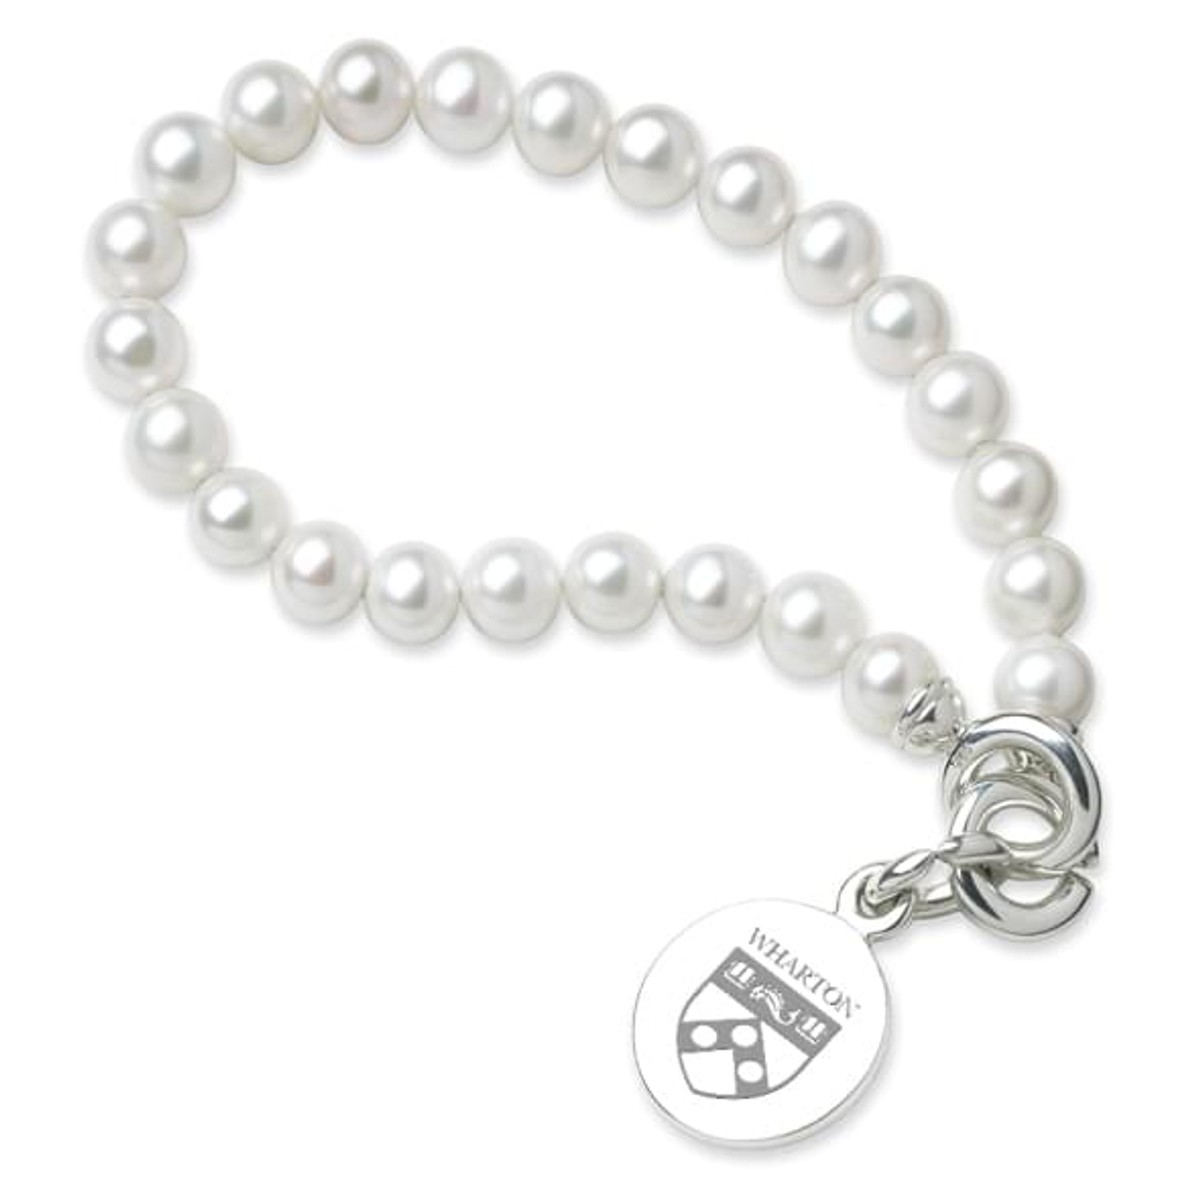 wharton pearl bracelet with sterling silver charm at m lahart co Red Wine Vinegar